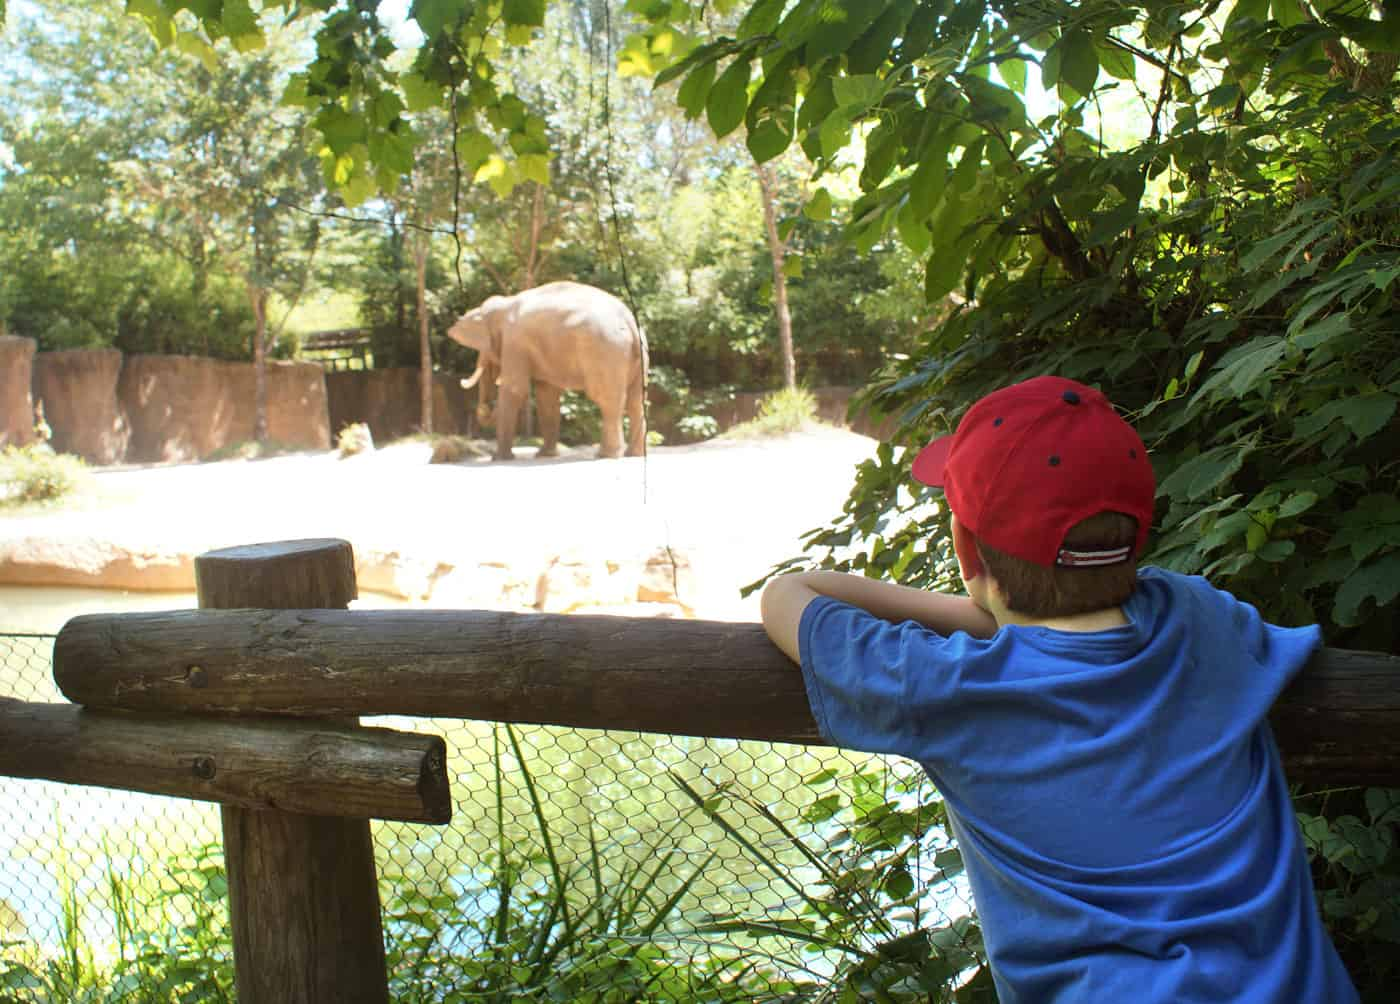 kid watching elephants at the St. Louis Zoo